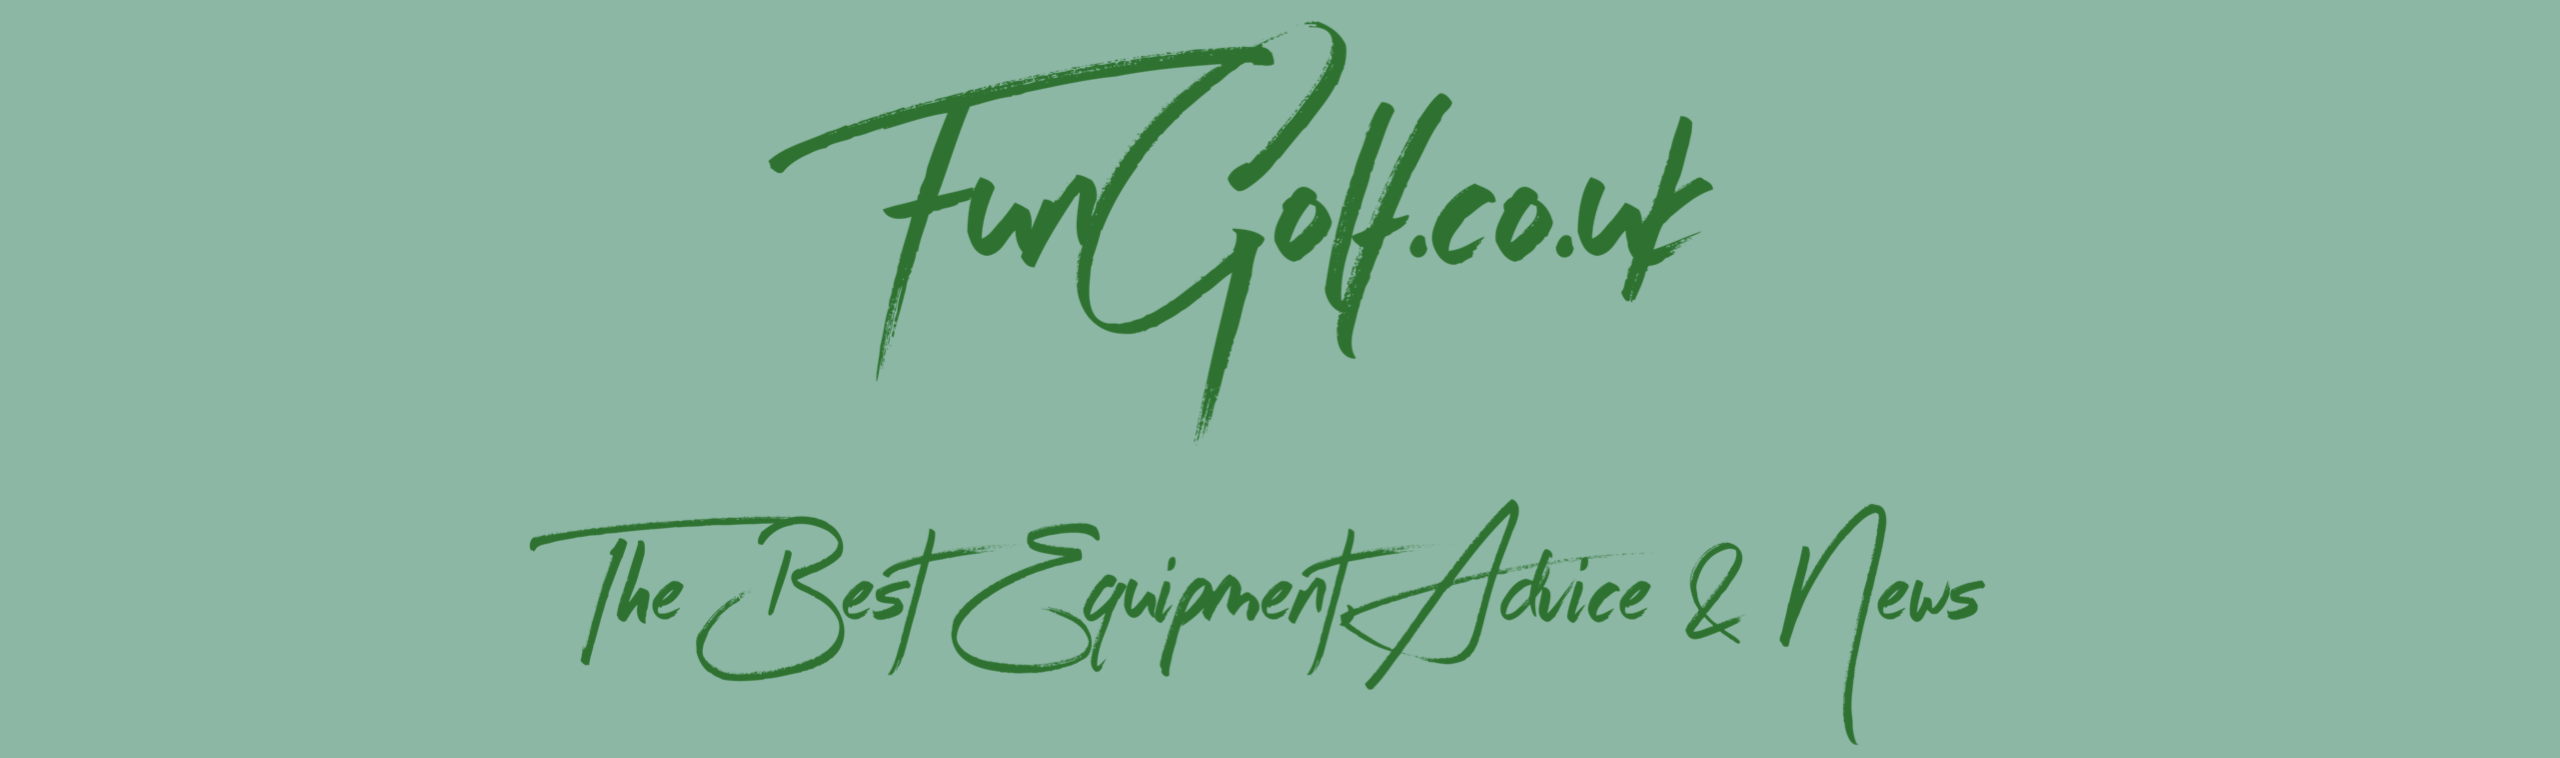 fungolf.co.uk